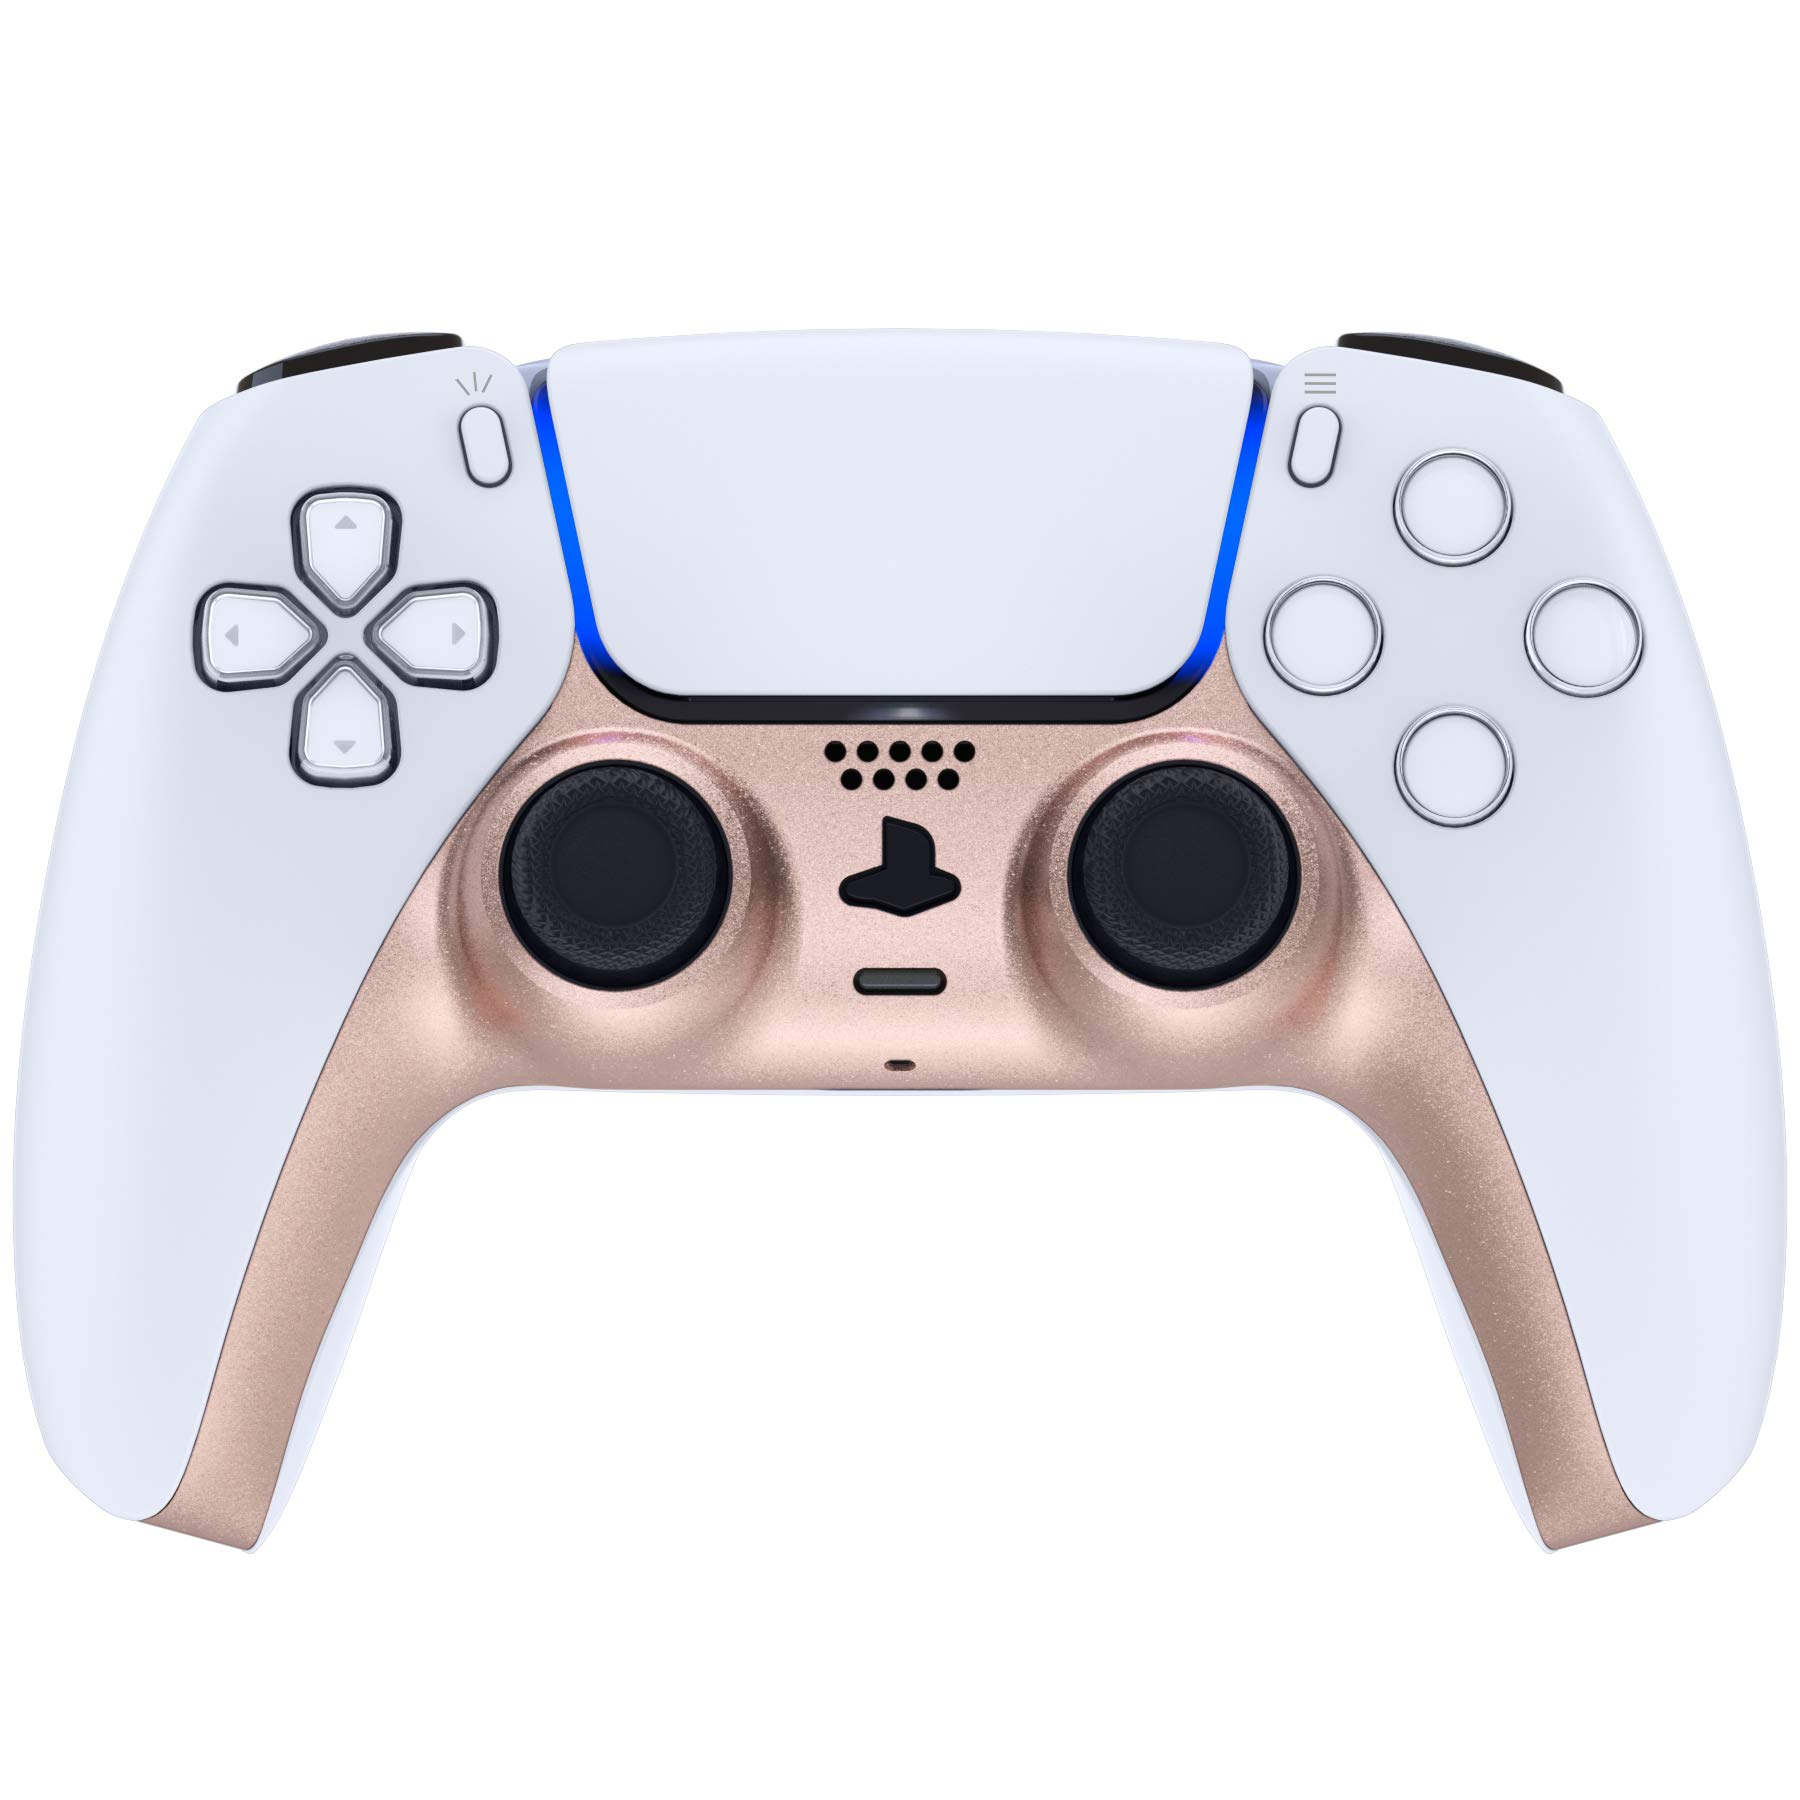 eXtremeRate Metallic Rose Gold Decorative Trim Shell for DualSense 5 Controller, DIY Replacement Clip Shell for PS5 Controller, Custom Plates Cover for Playstation 5 Controller w/Accent Rings